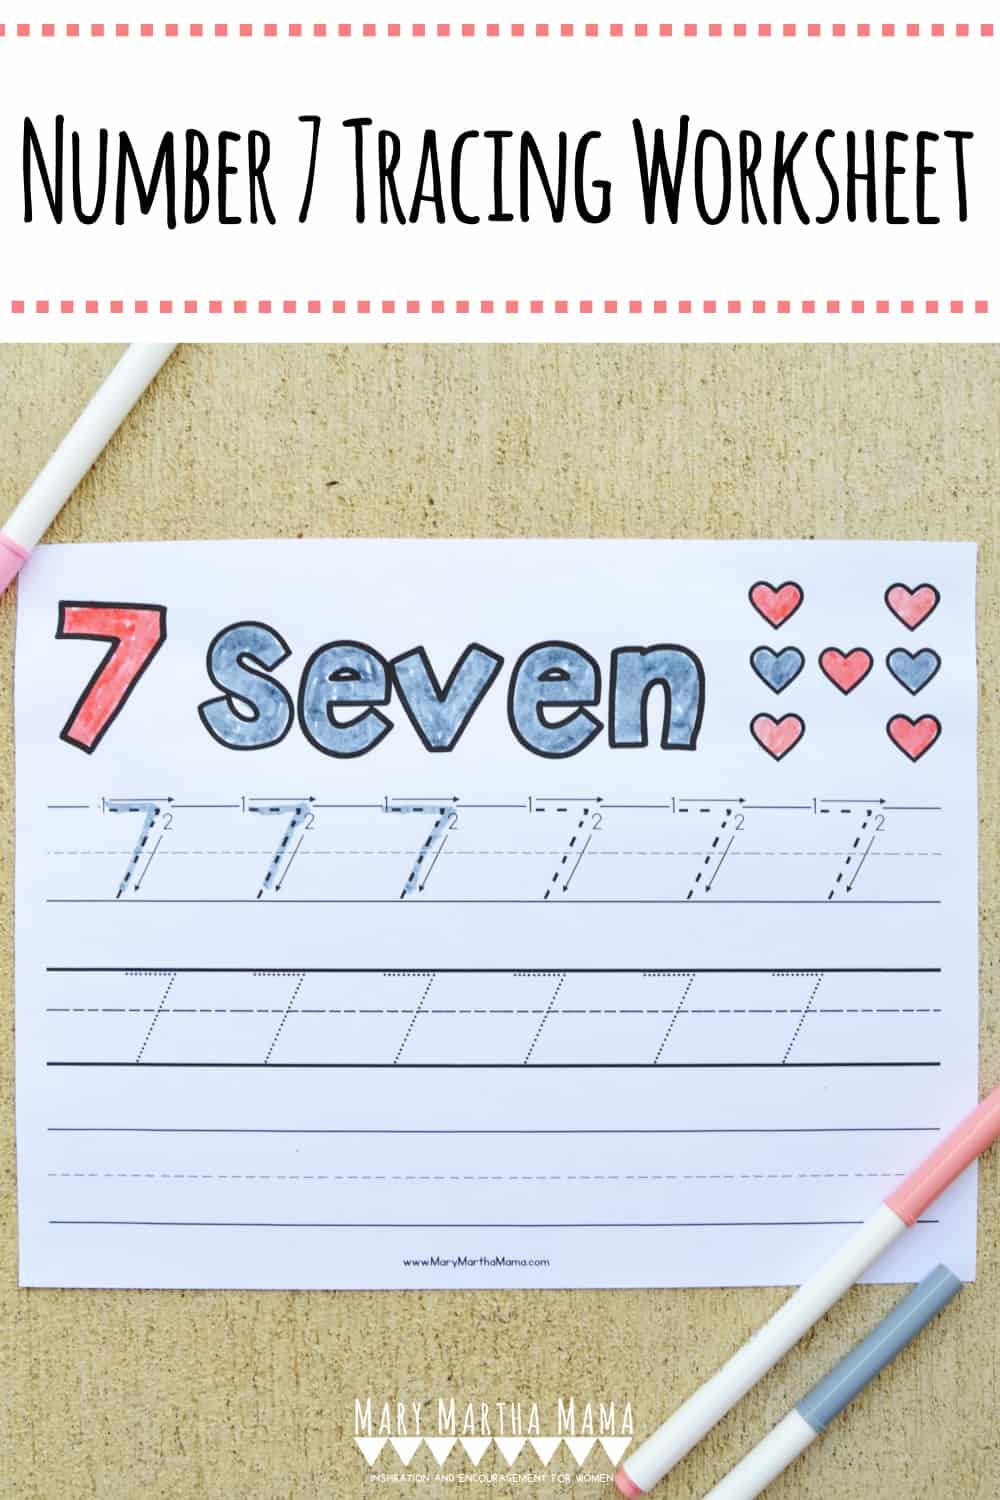 Use this free printable Number 7 Tracing Worksheet to help your kiddo learn how to write number 7. Features tracing with and without arrows to guide.